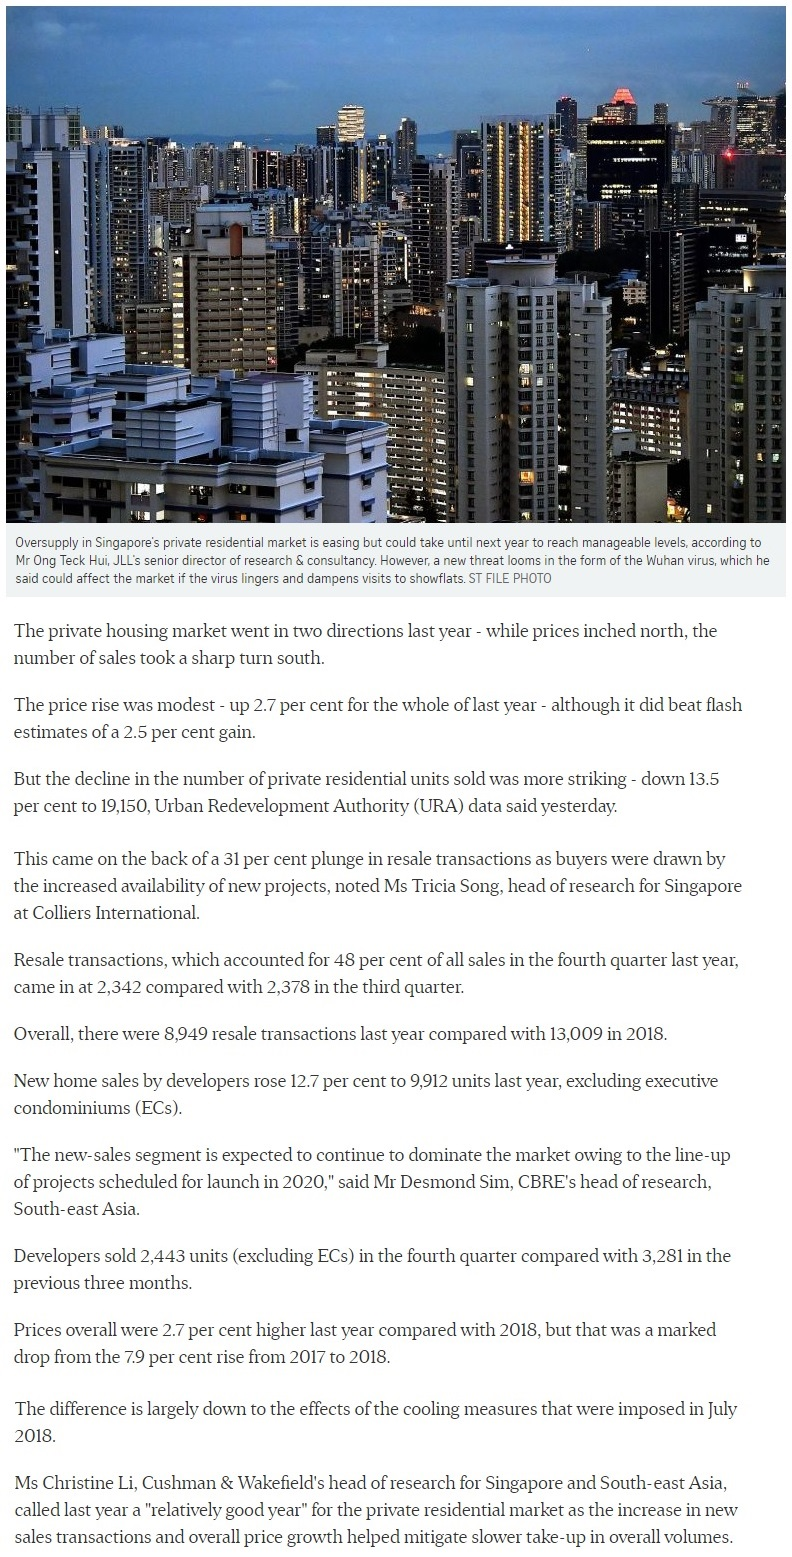 Urban Treasures - Singapore private home prices inch up 2.7% for 2019 Part 1